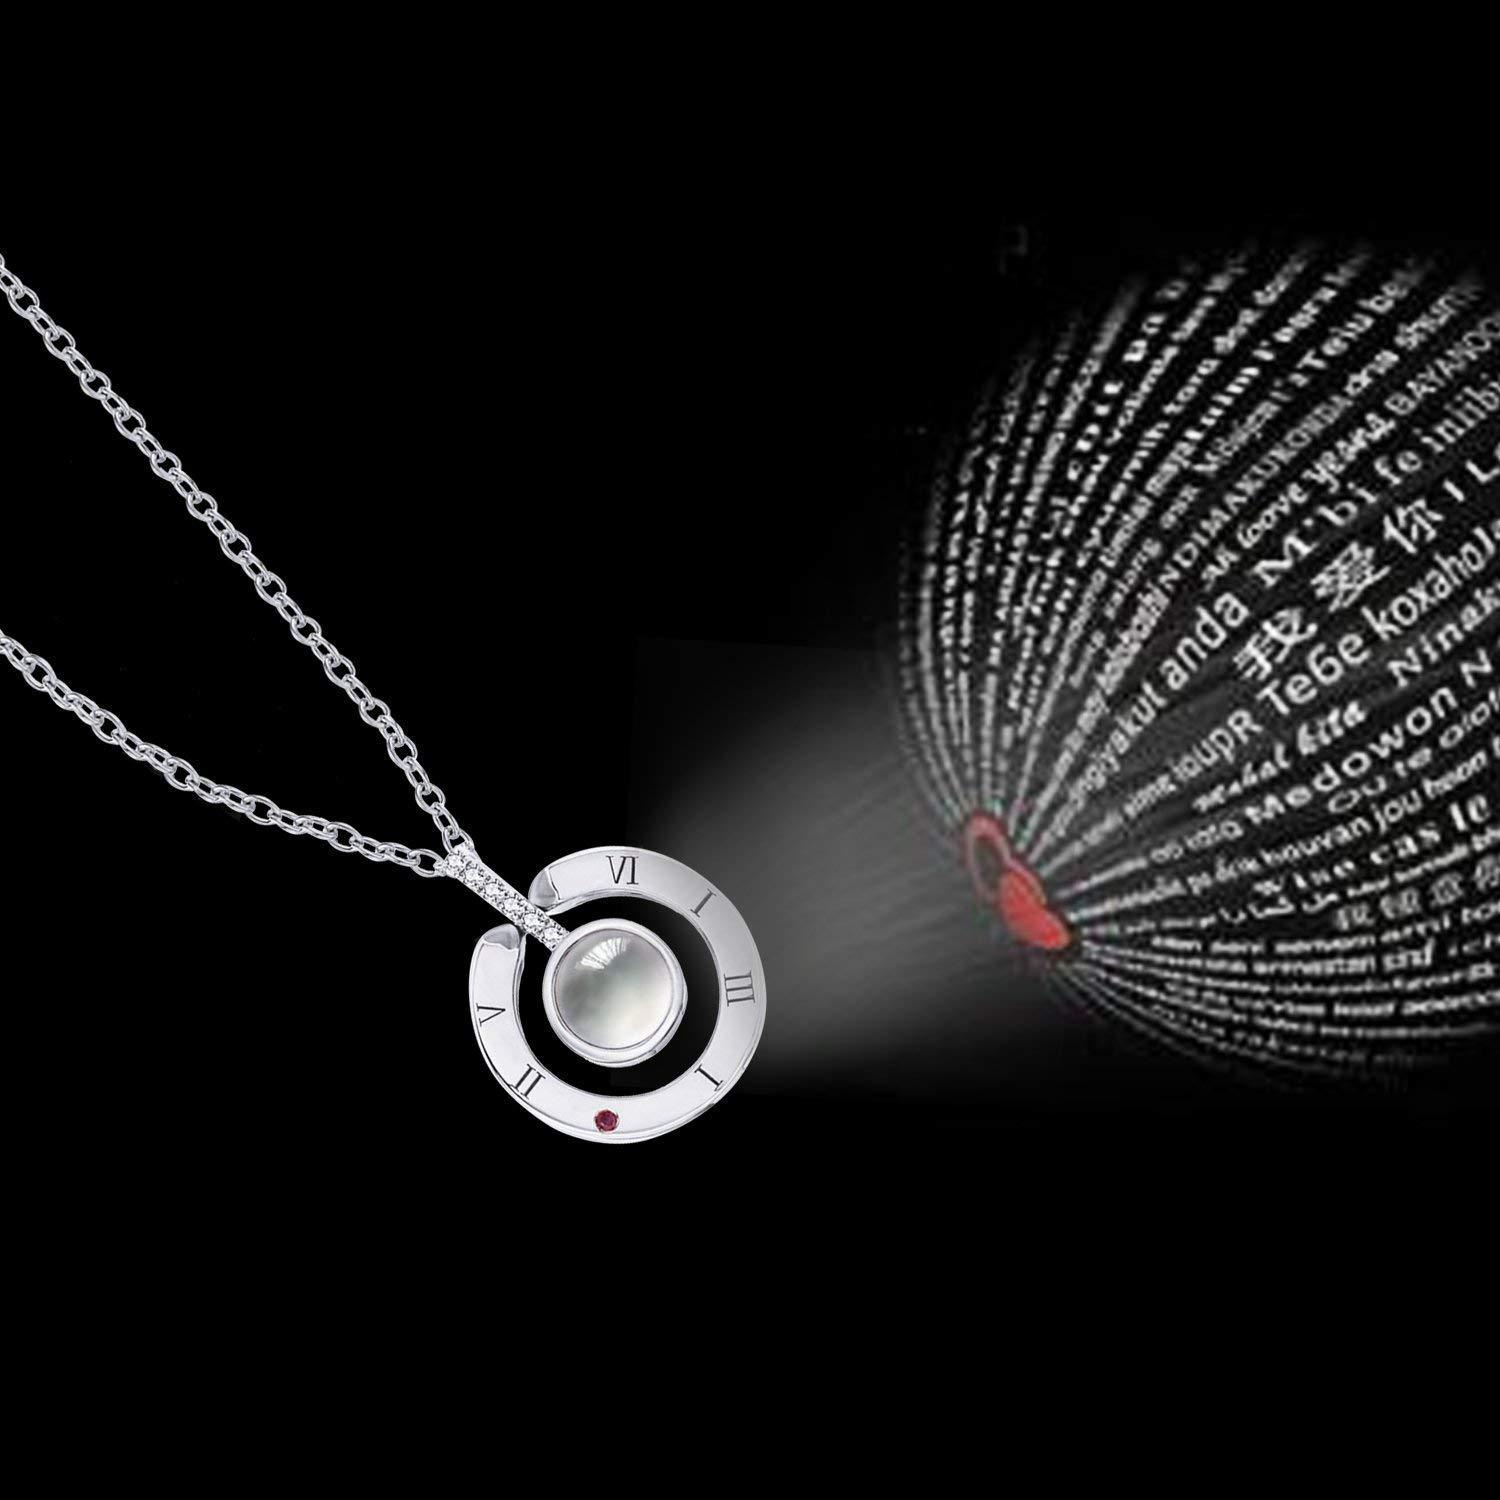 Projector Necklace 8